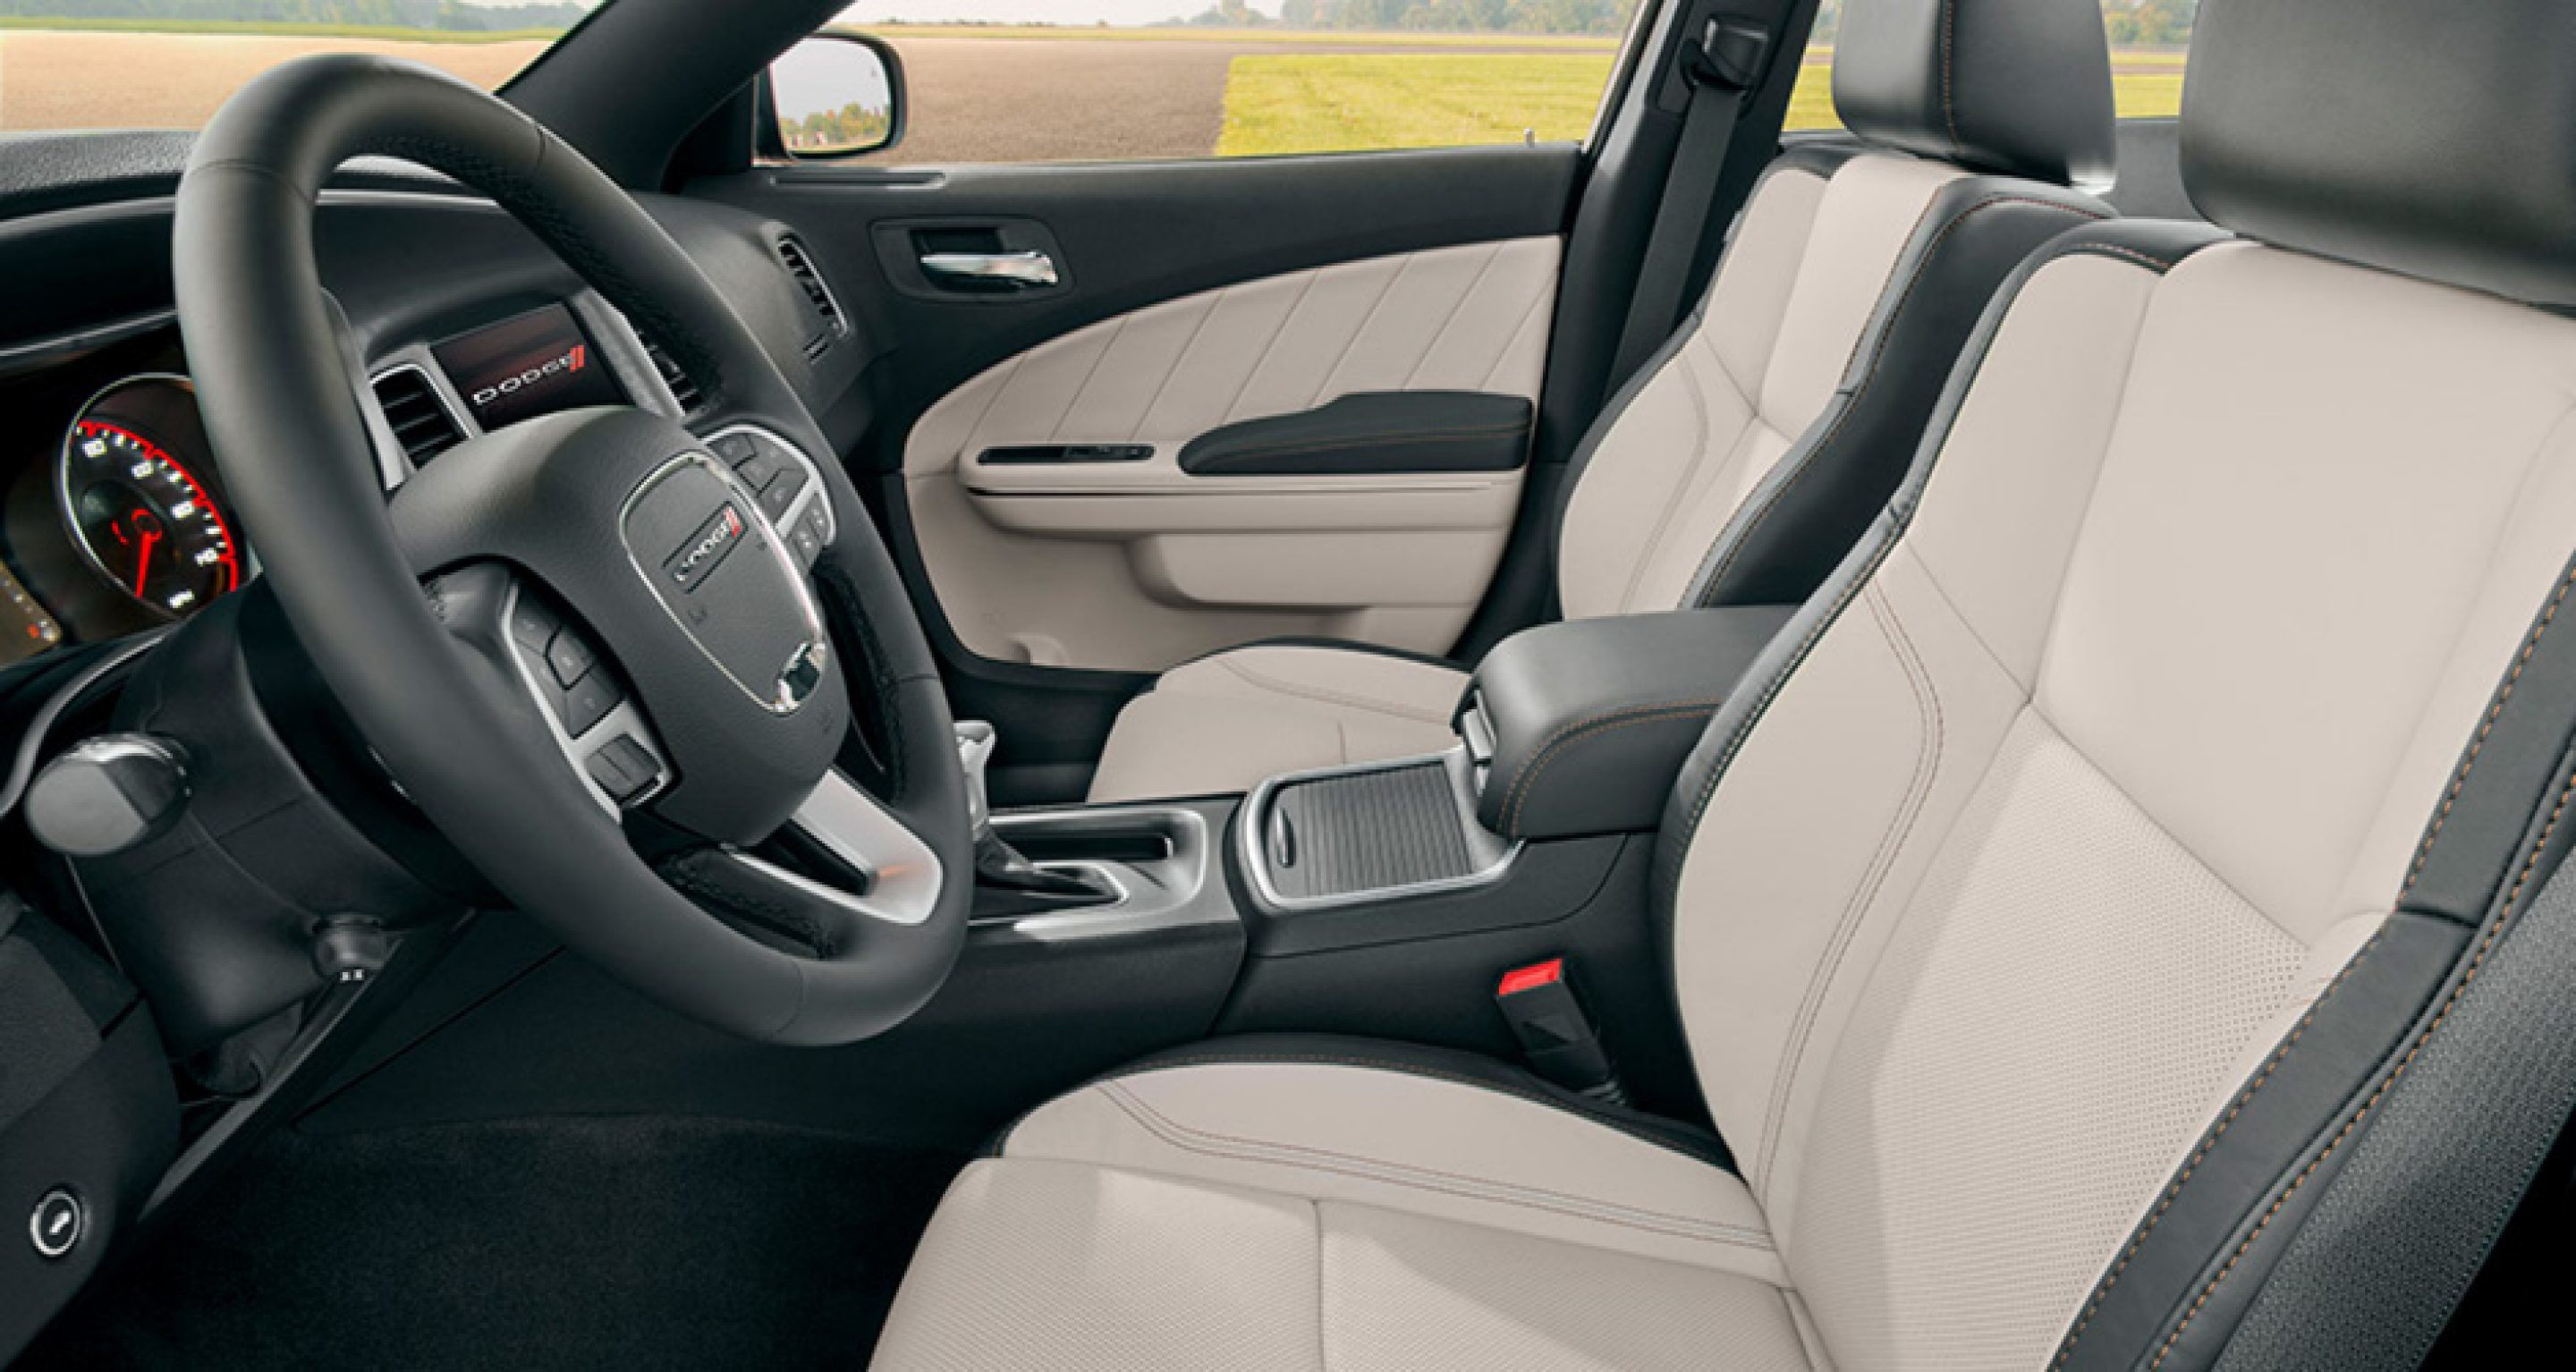 2018-charger-gallery-interior3.jpg.image.2880